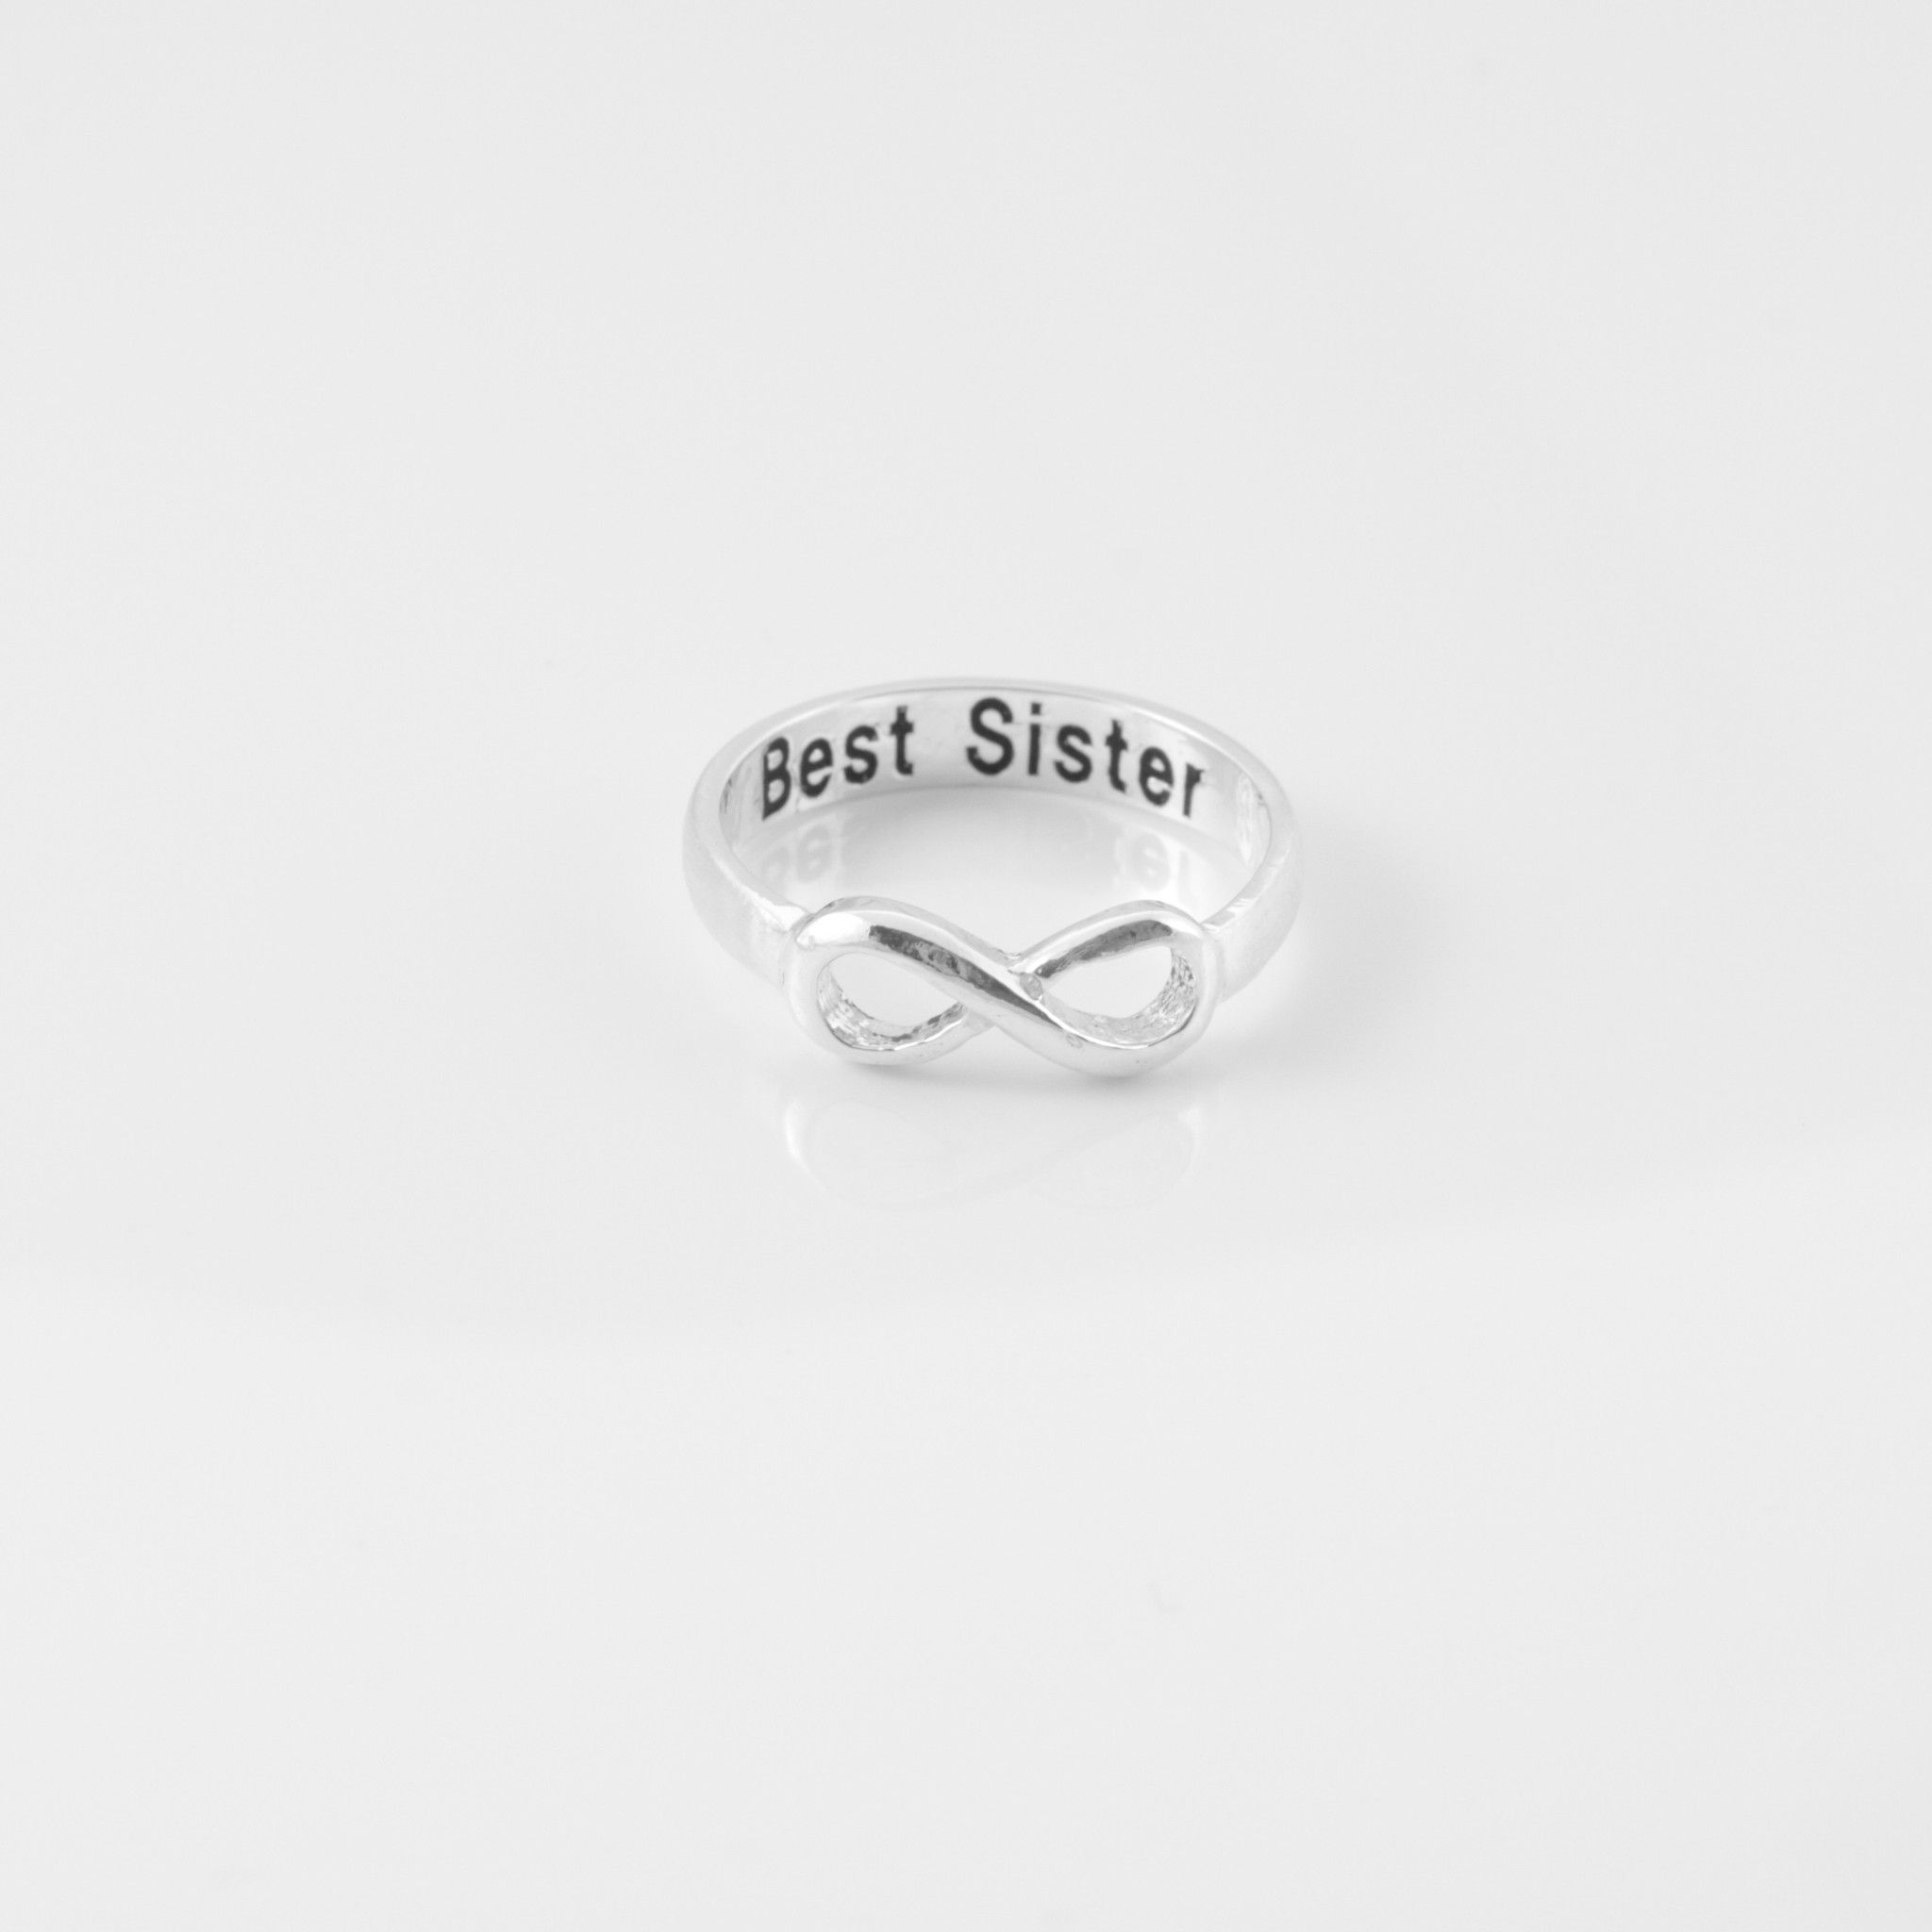 rbr riverside bird rings archives becca sister product williams artfull expression silver category ring